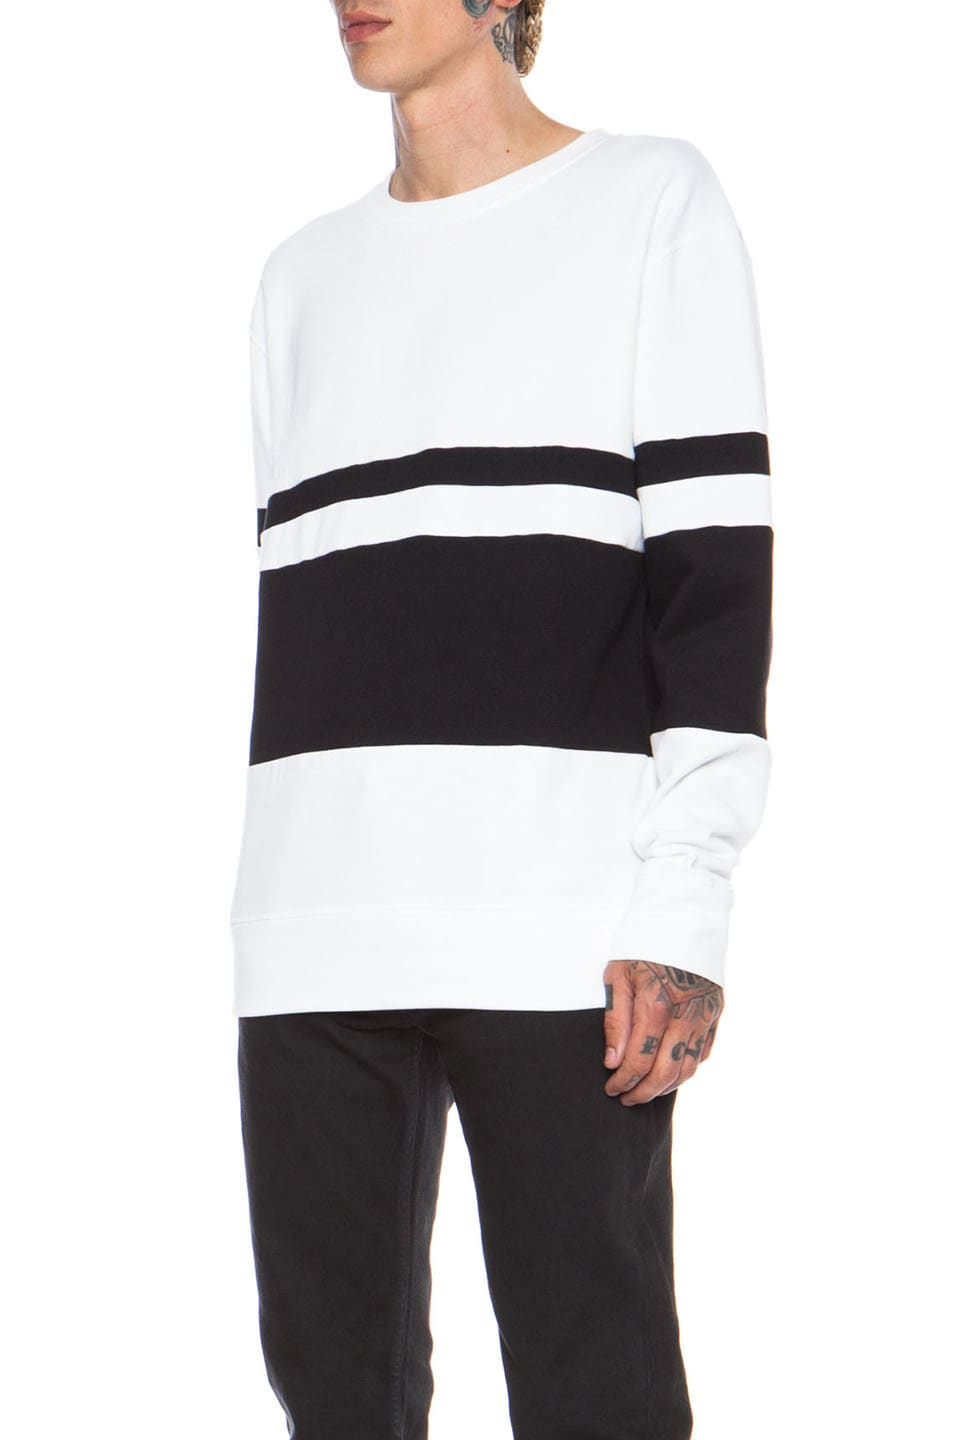 Image 2 of Casely-Hayford Whitfield Panel Stripe Cotton-Blend Sweatshirt in White